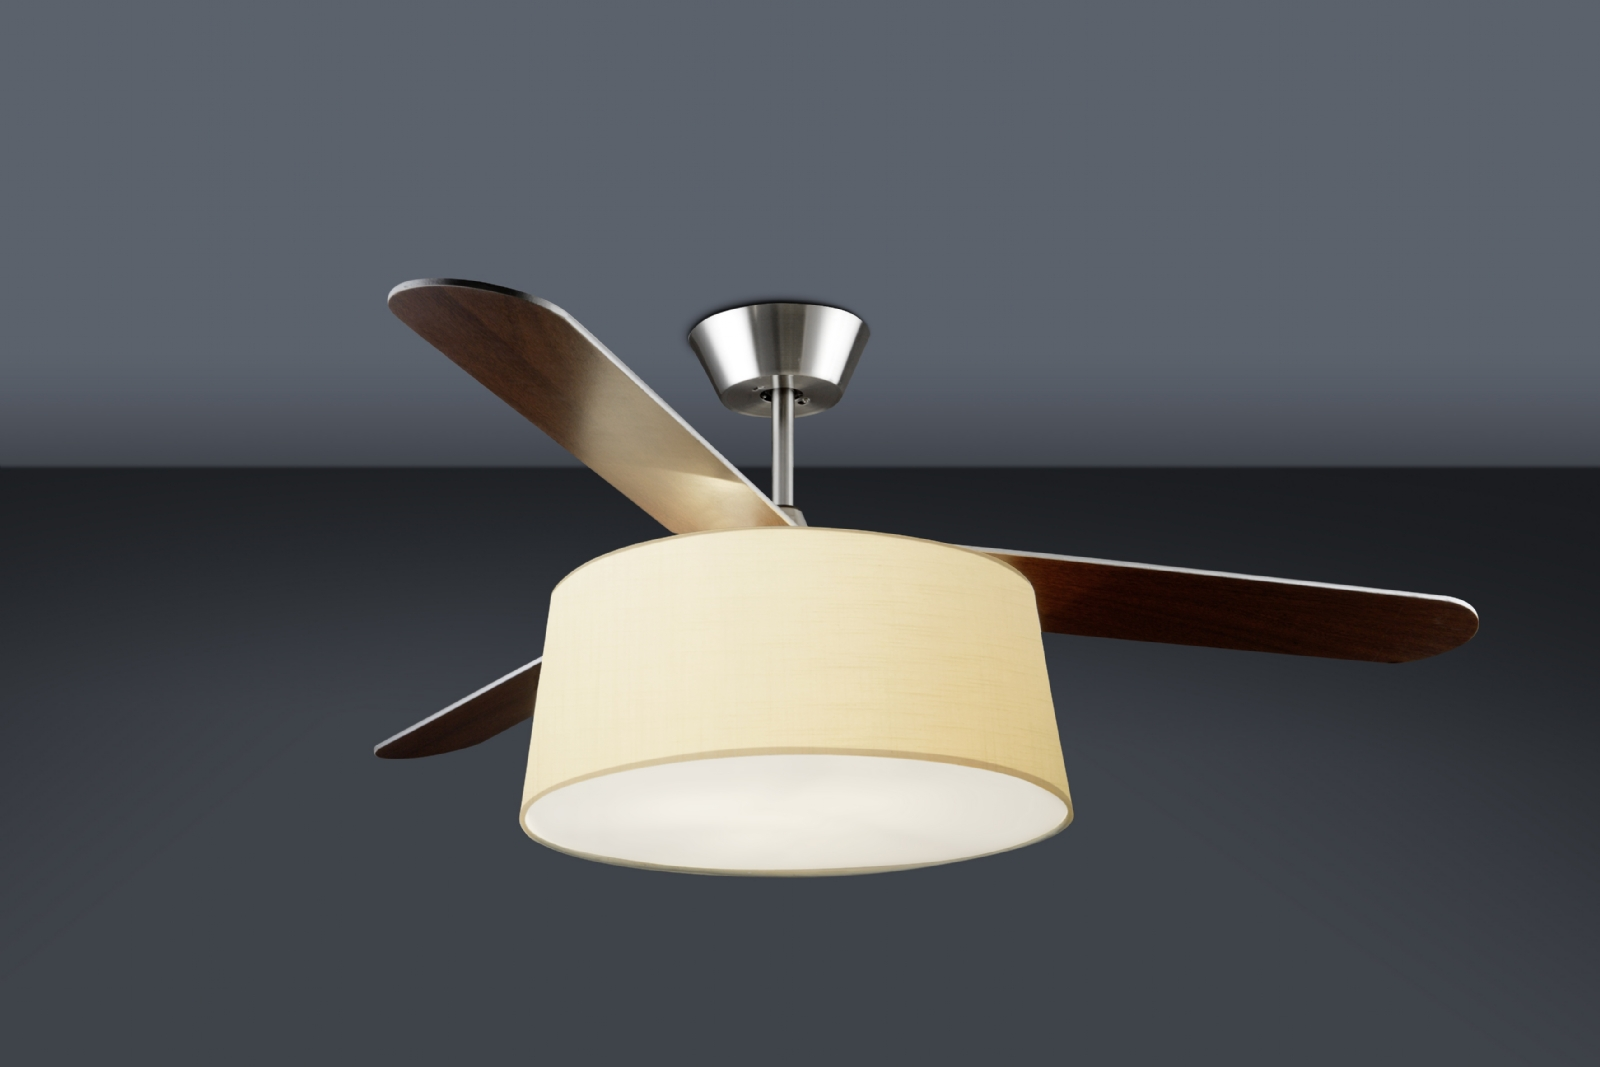 Modern ceiling fan lights - add a sophisticated touch to ...